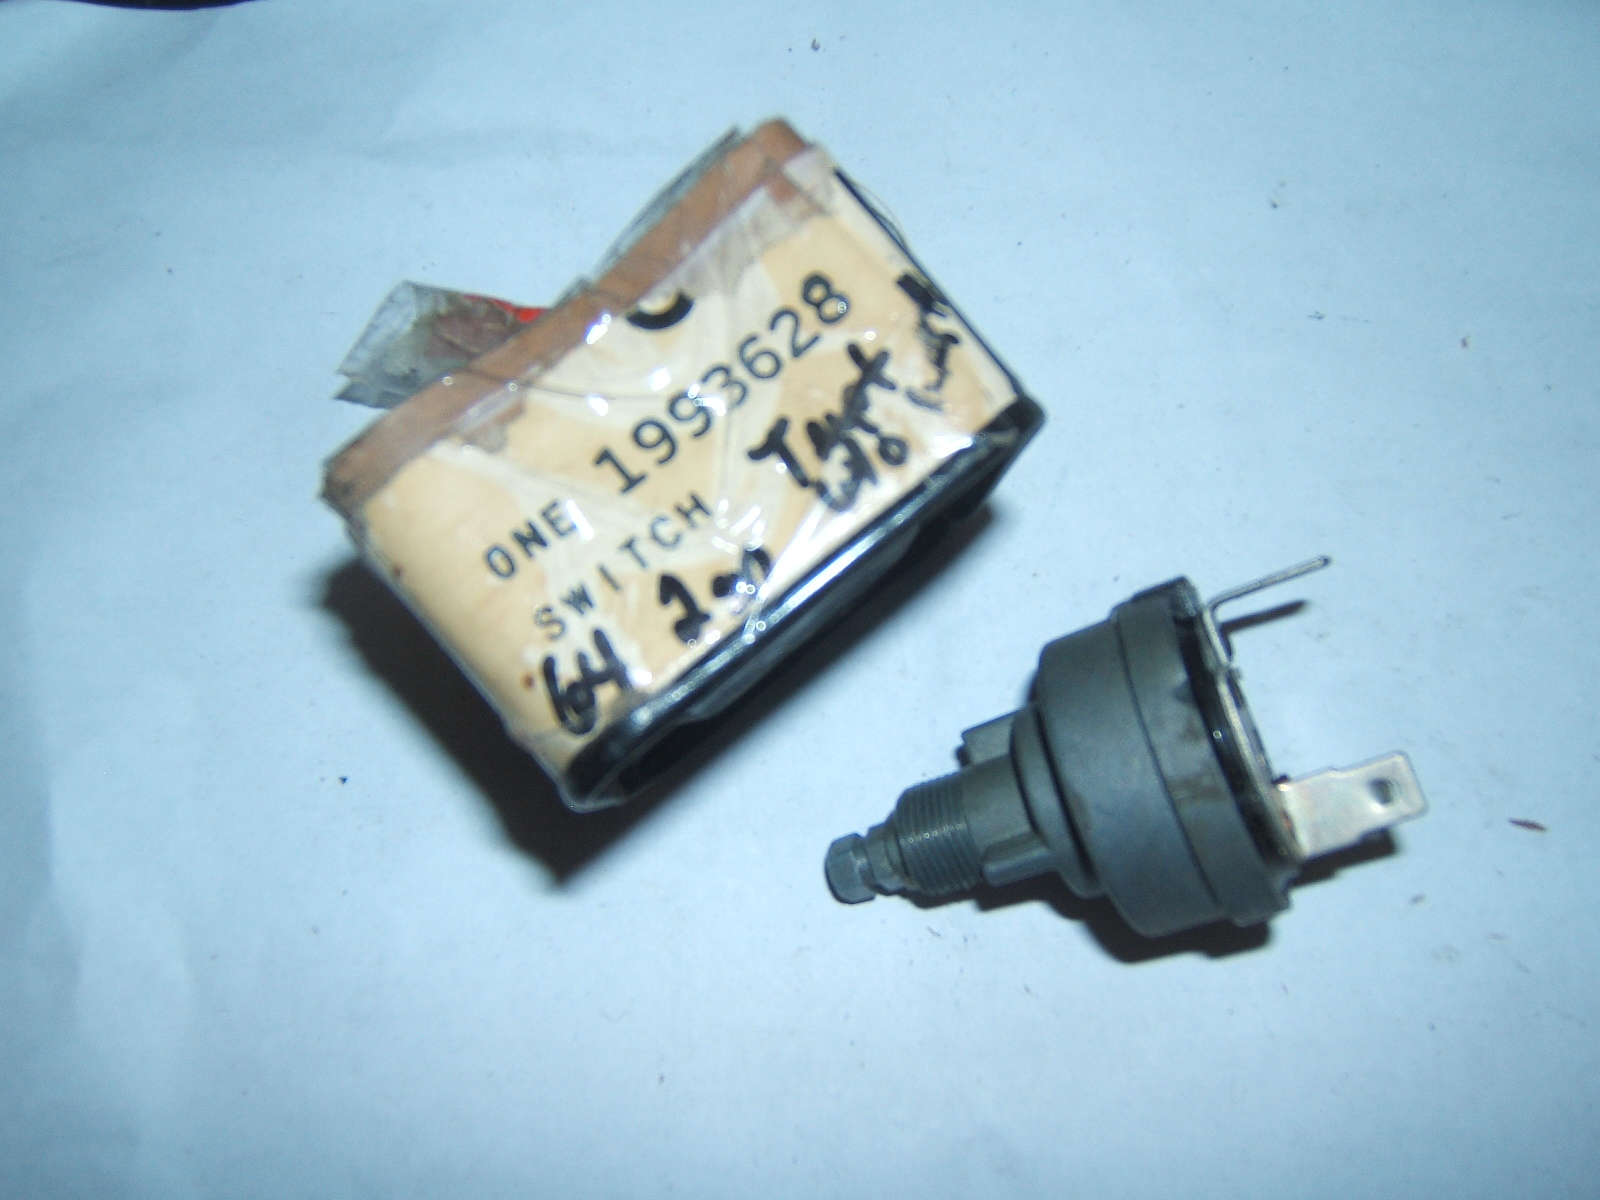 1964 Pontiac Tempest GTO windshield wiper switch nos 1993628 (a 1993628)